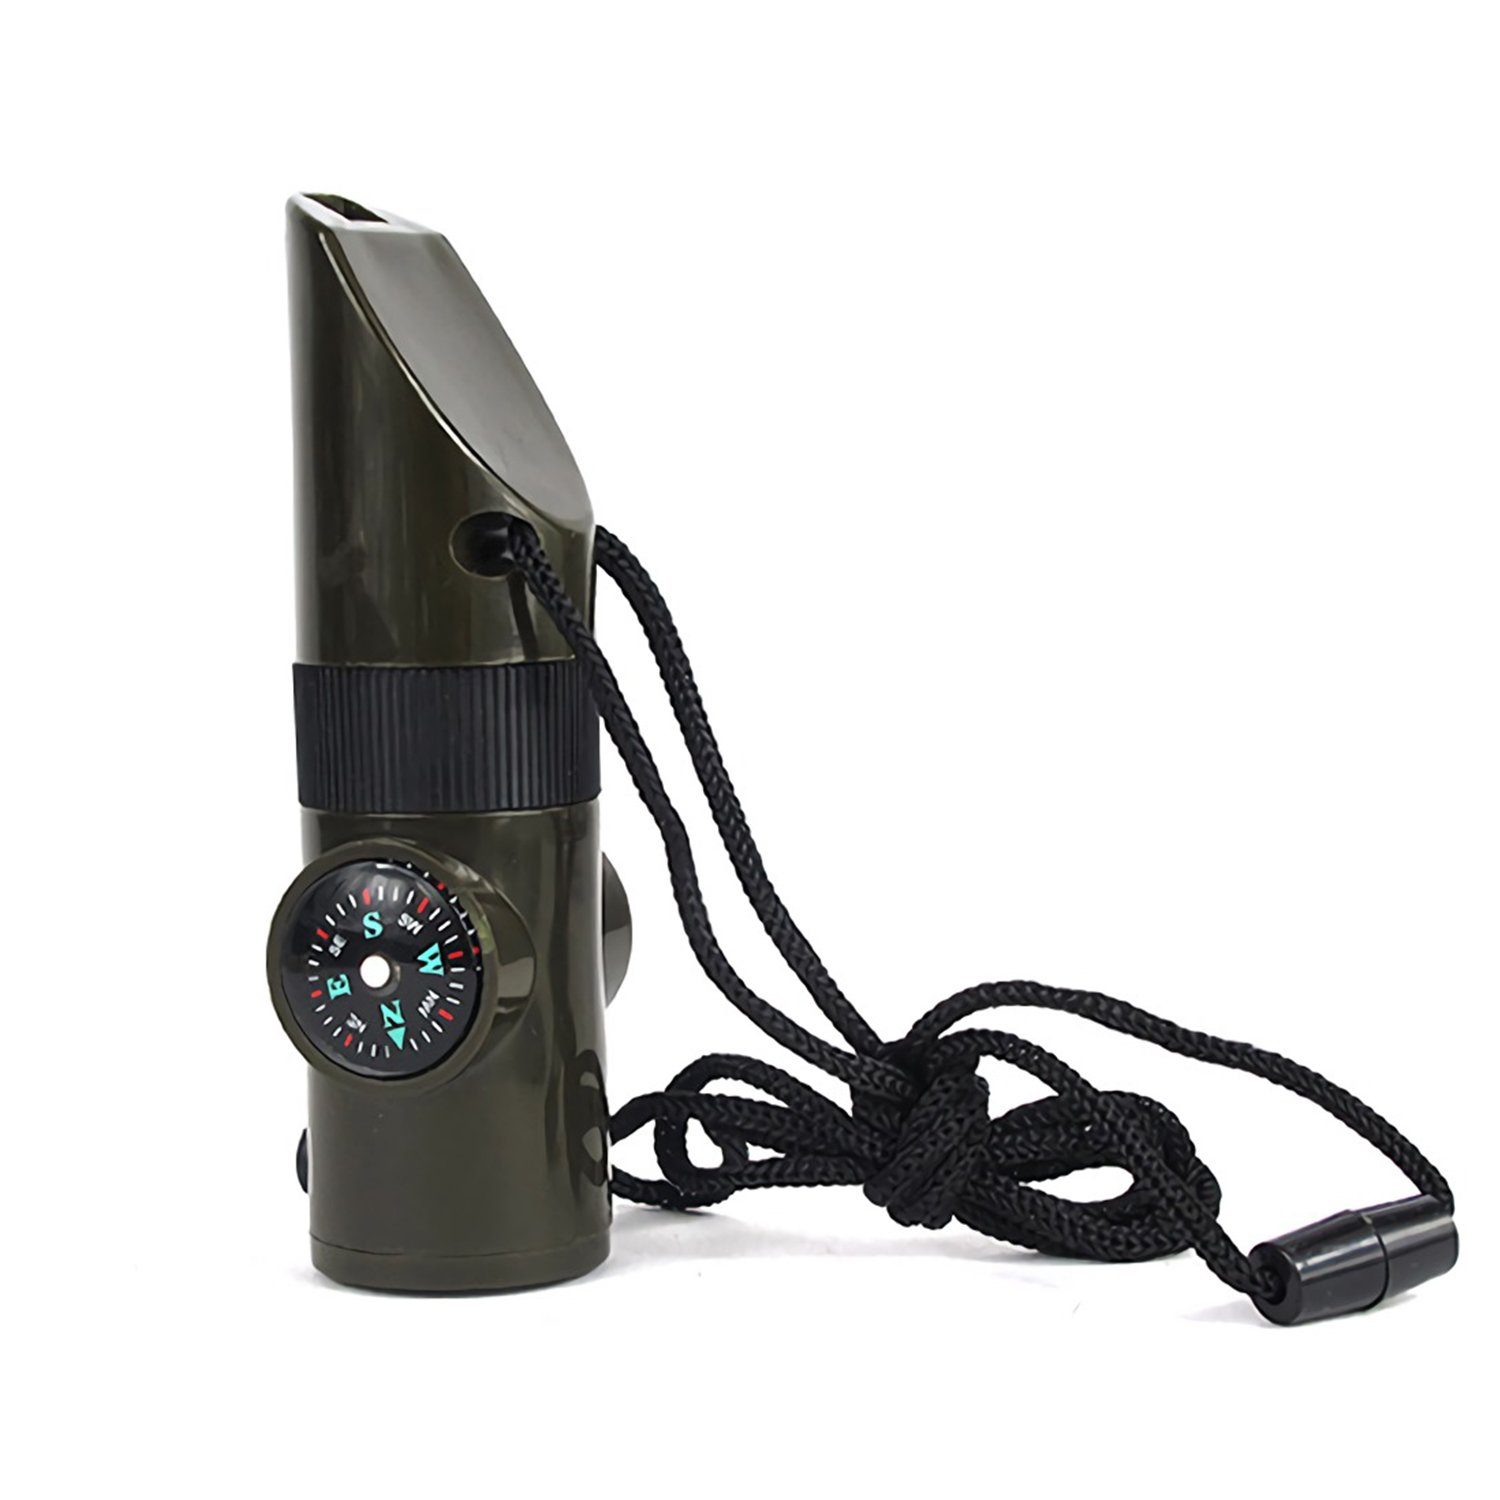 Multifunctional Outdoor Whistle 7 in 1 Camping Hiking Survival Whistle with Compass Magnifier LED Flashlight Thermometer Mirror Small Storage Warehouse (Dark Green) Ronoa